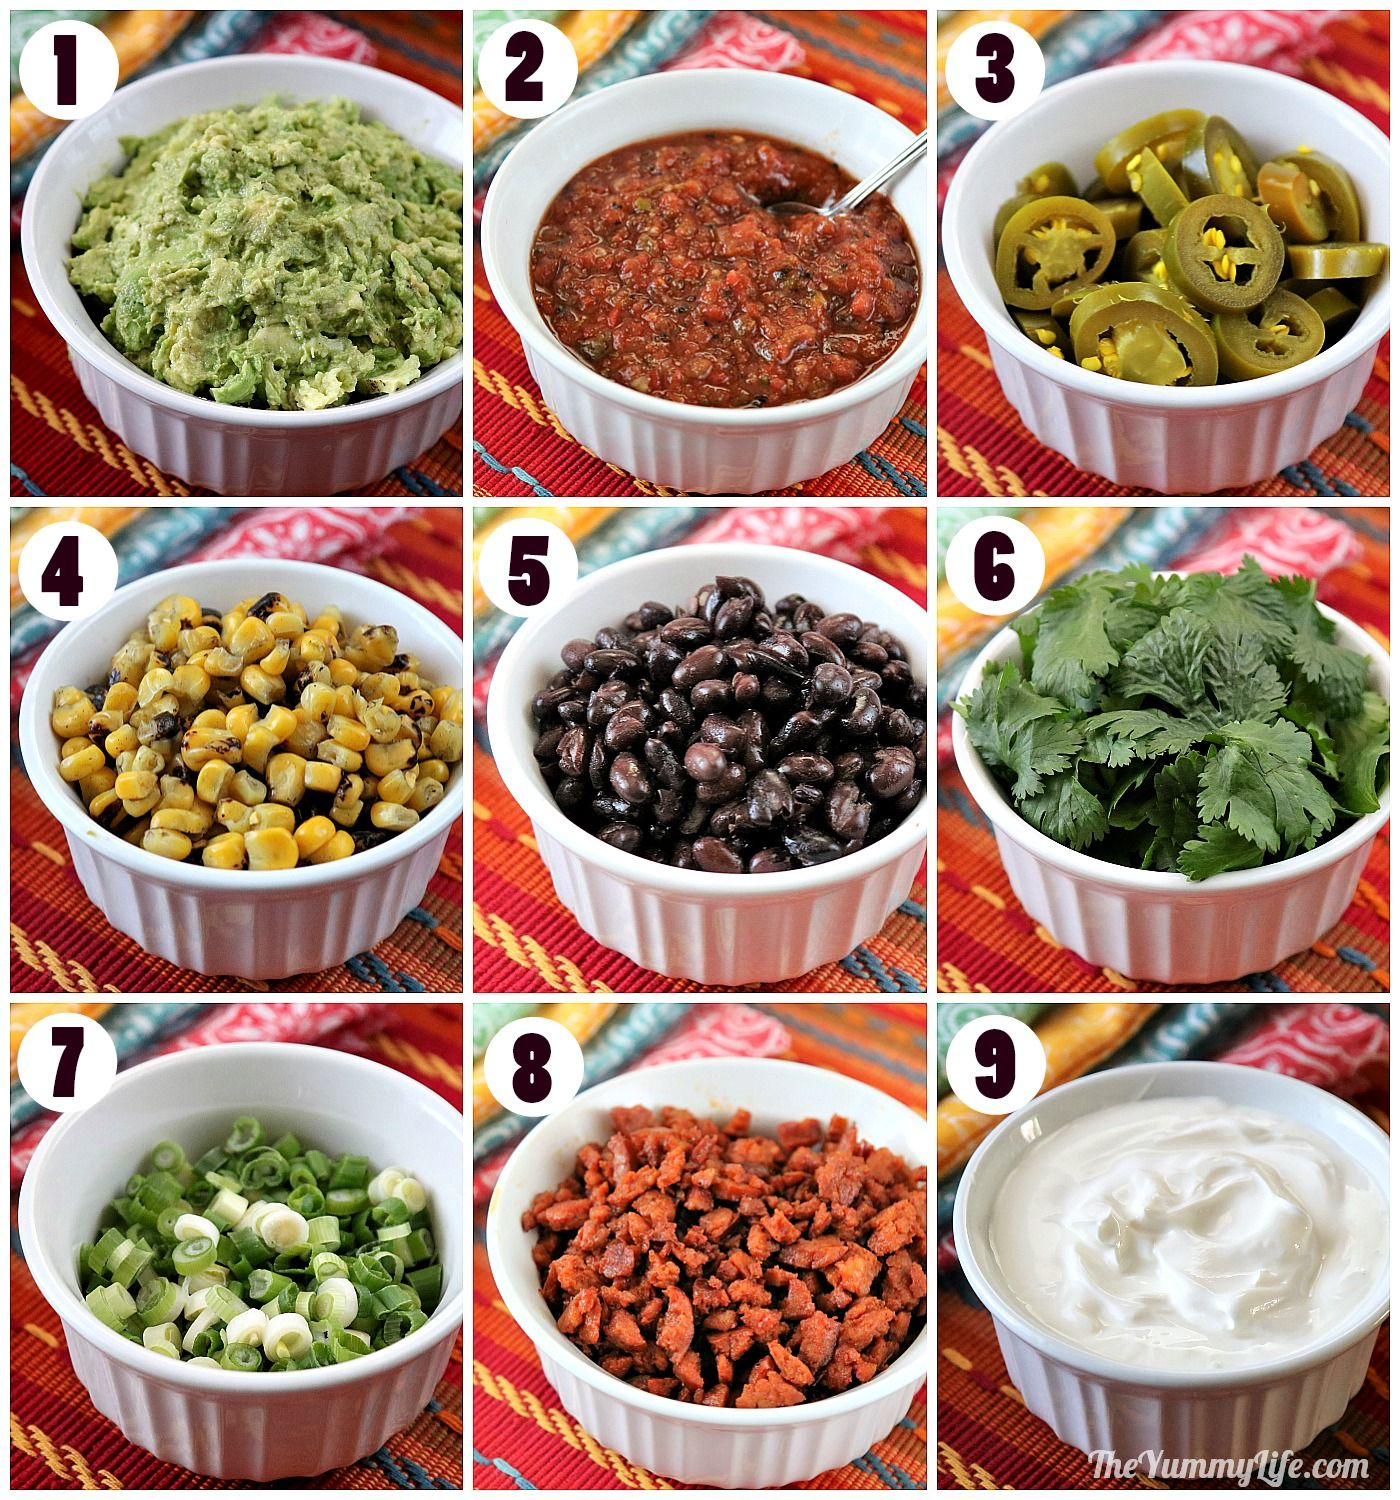 collagenacho_toppings_numbered_Image.jpg